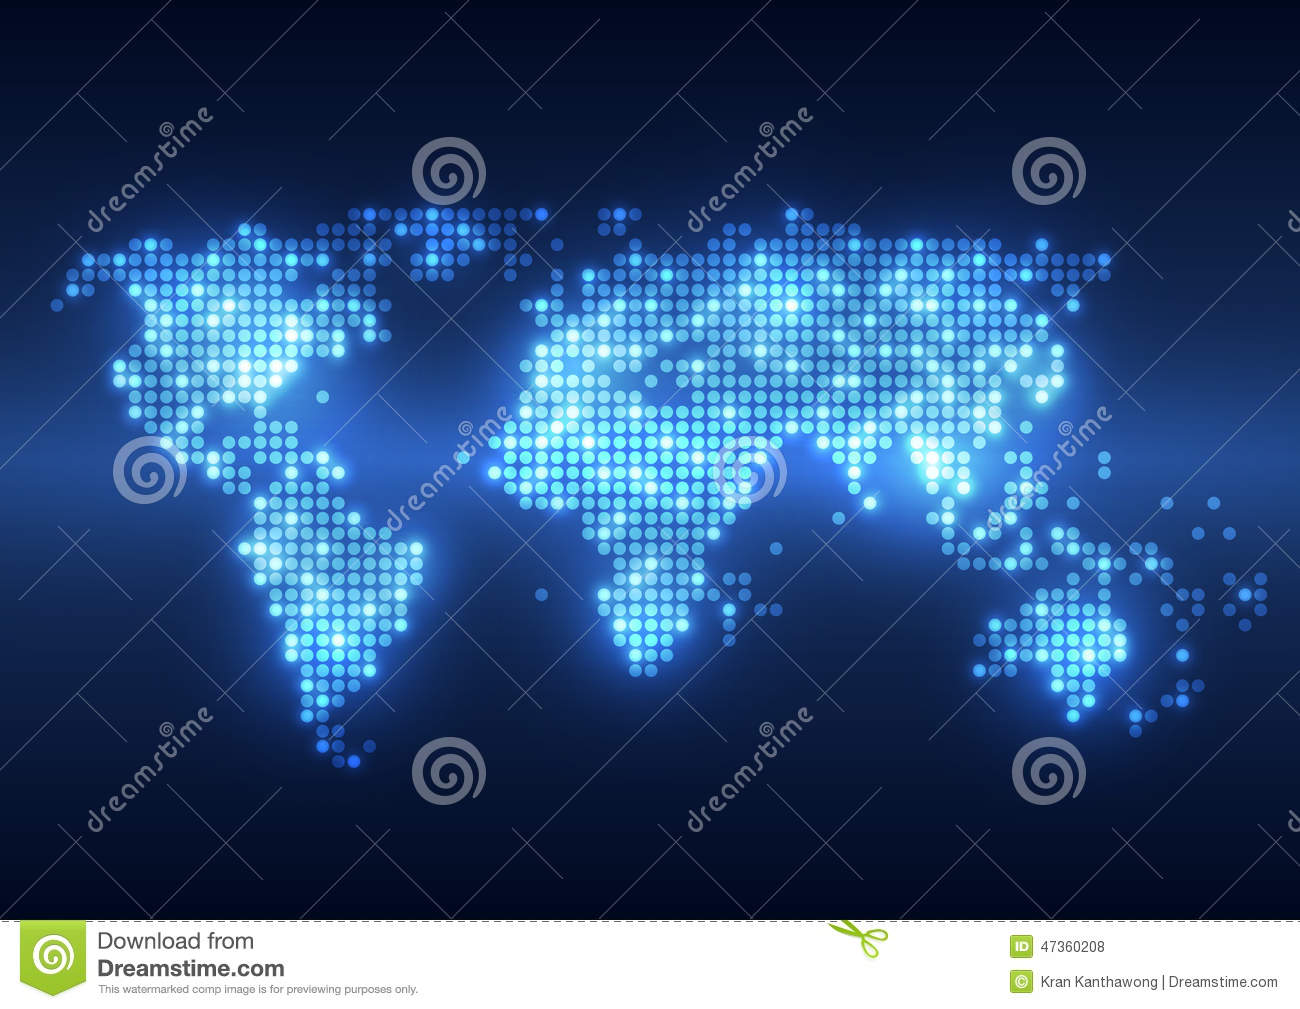 Abstract Technology Digital Backgrounds With Earth Map Stock Vector ...